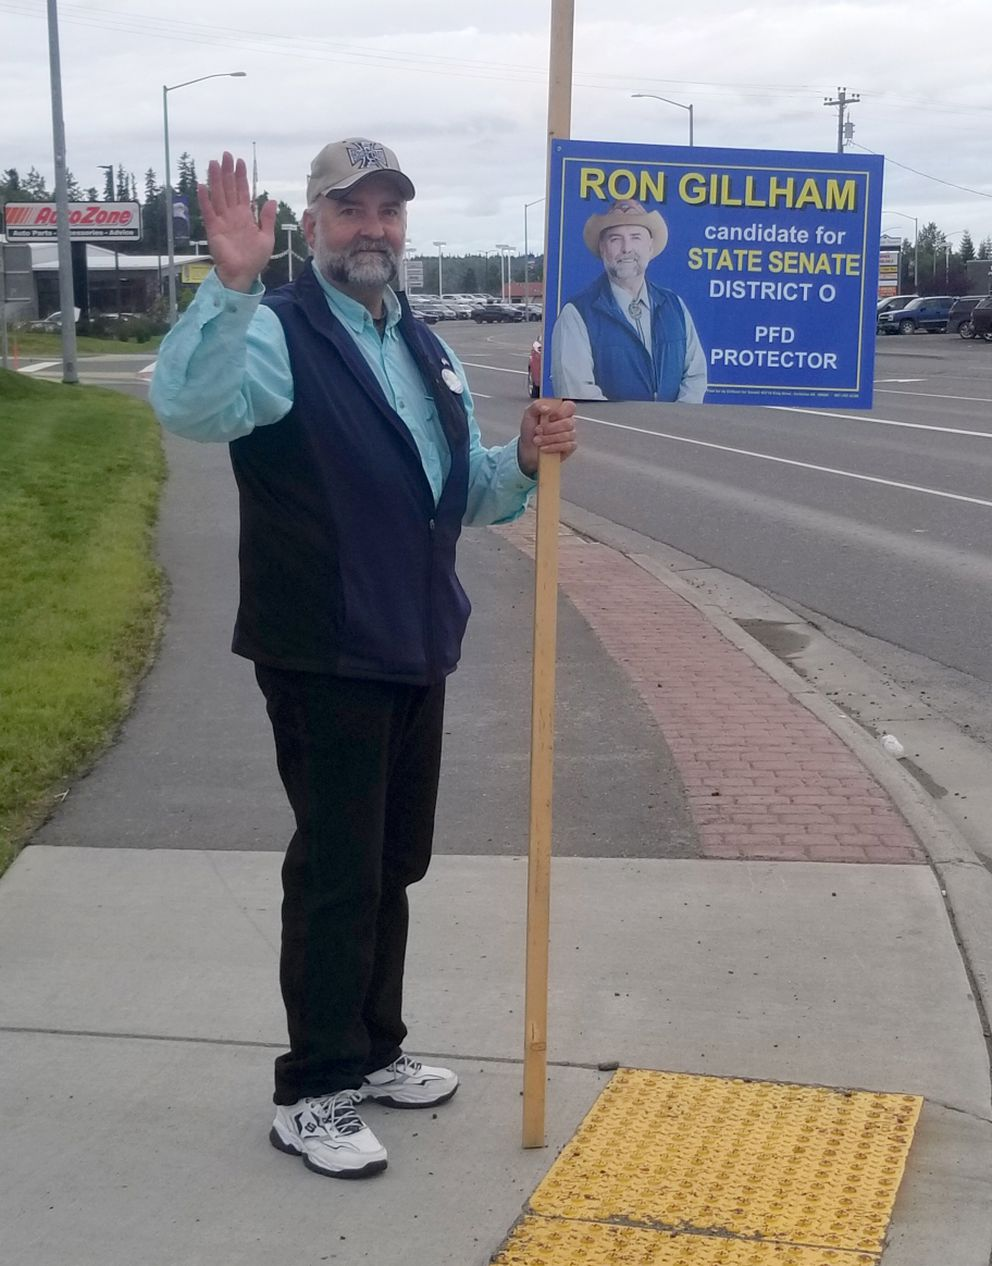 Ron Gillham campaigns in Soldotna, Monday, Aug. 20, 2018. (Photo by Cathy Sturman)